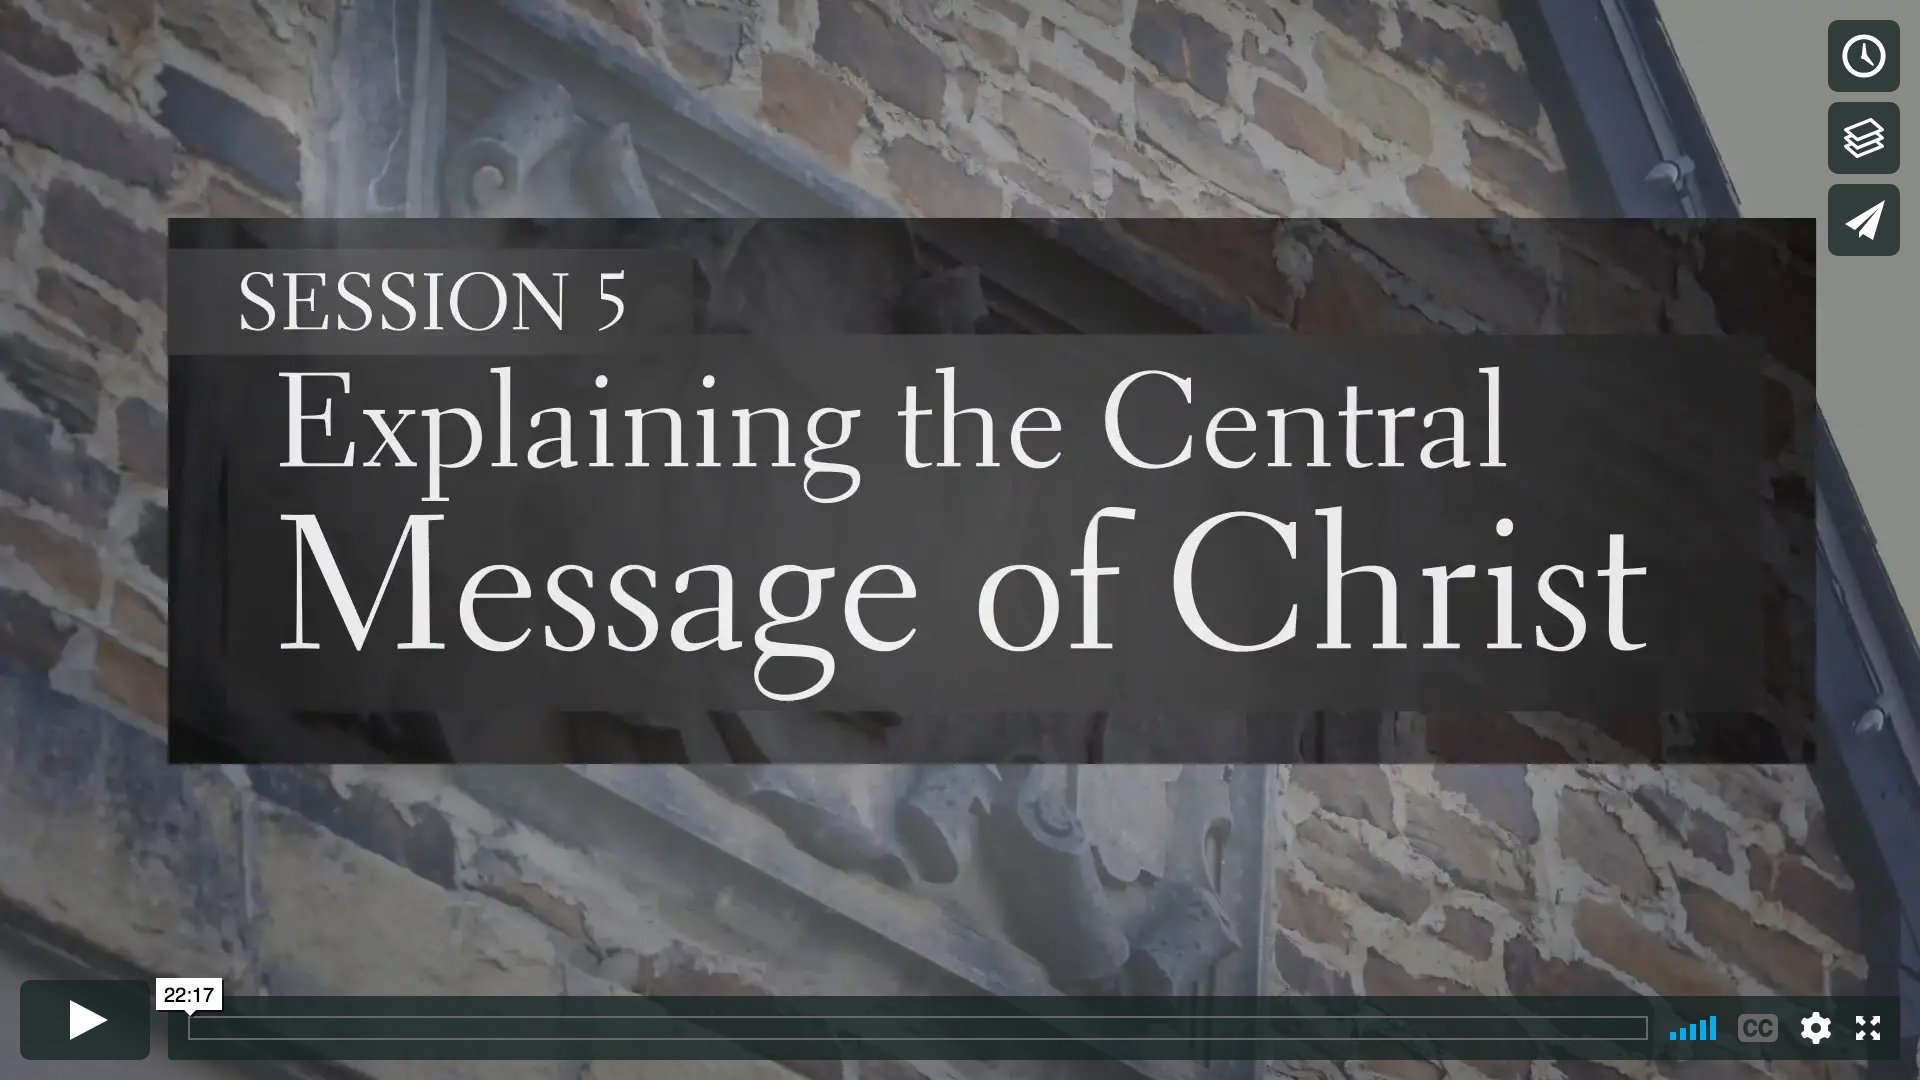 Session 5 - Explaining the Central Message of Christ